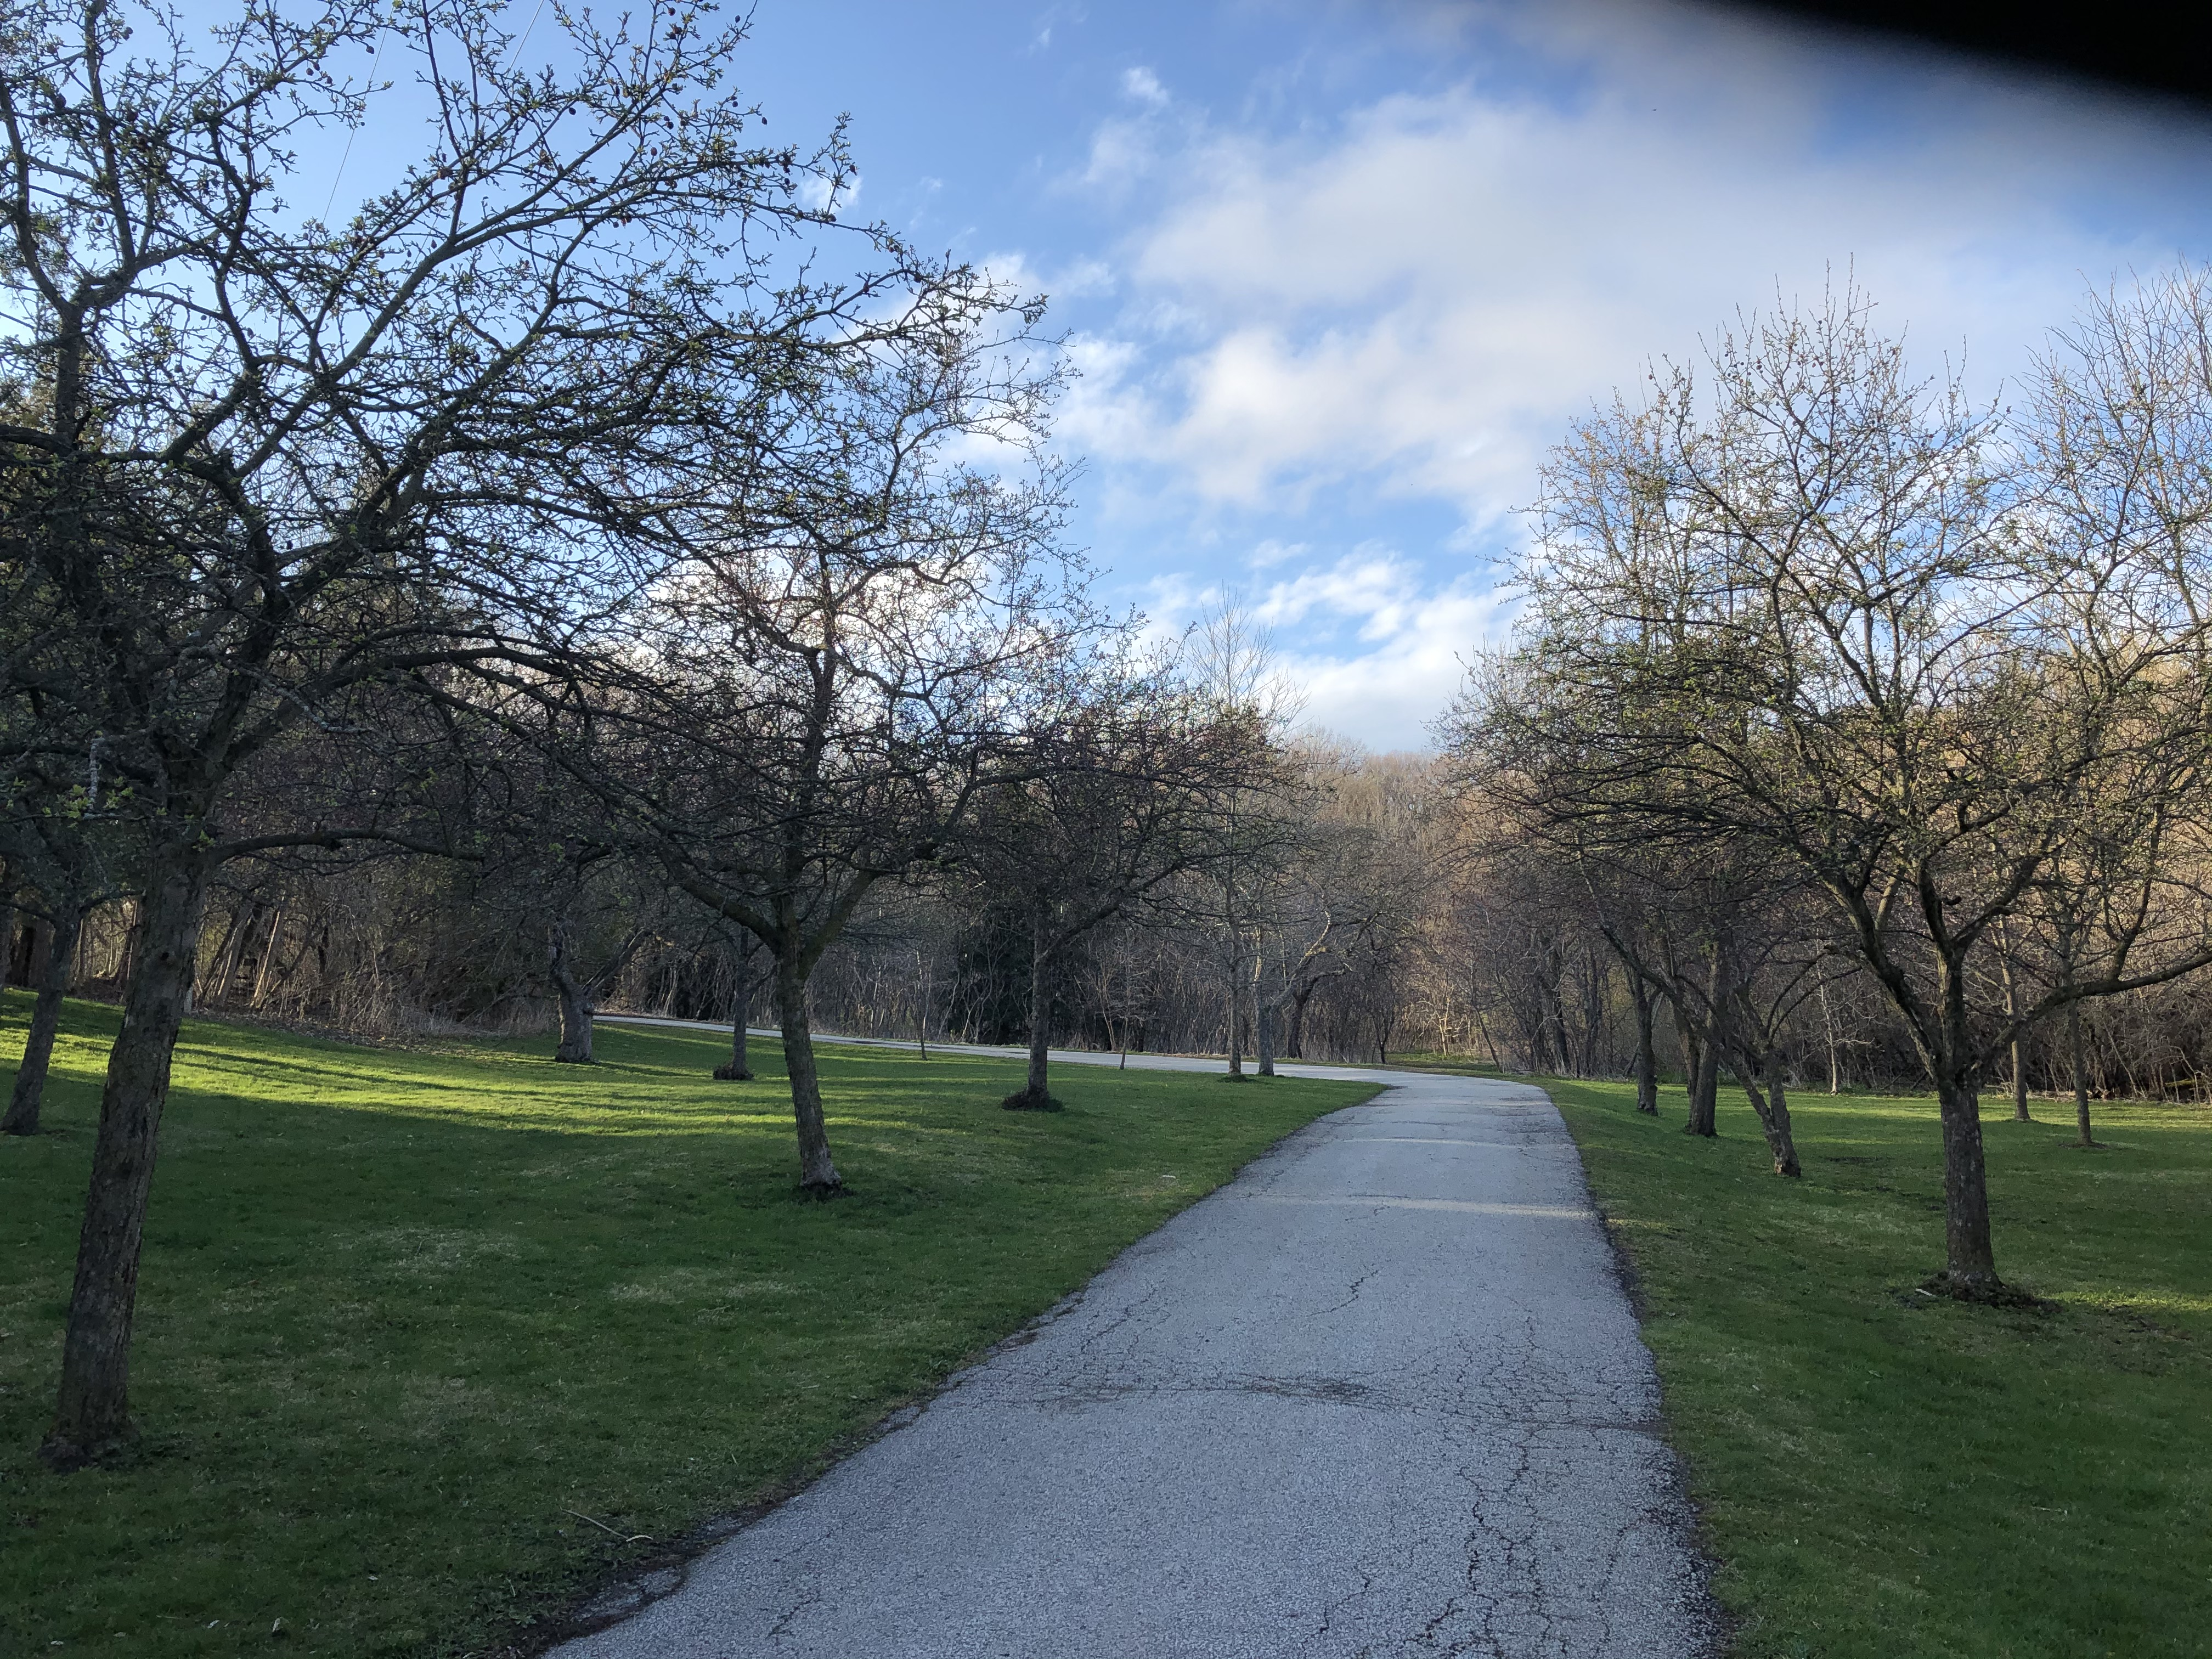 Walking trail in Toronto's Earl Bales Park - April, 2020.